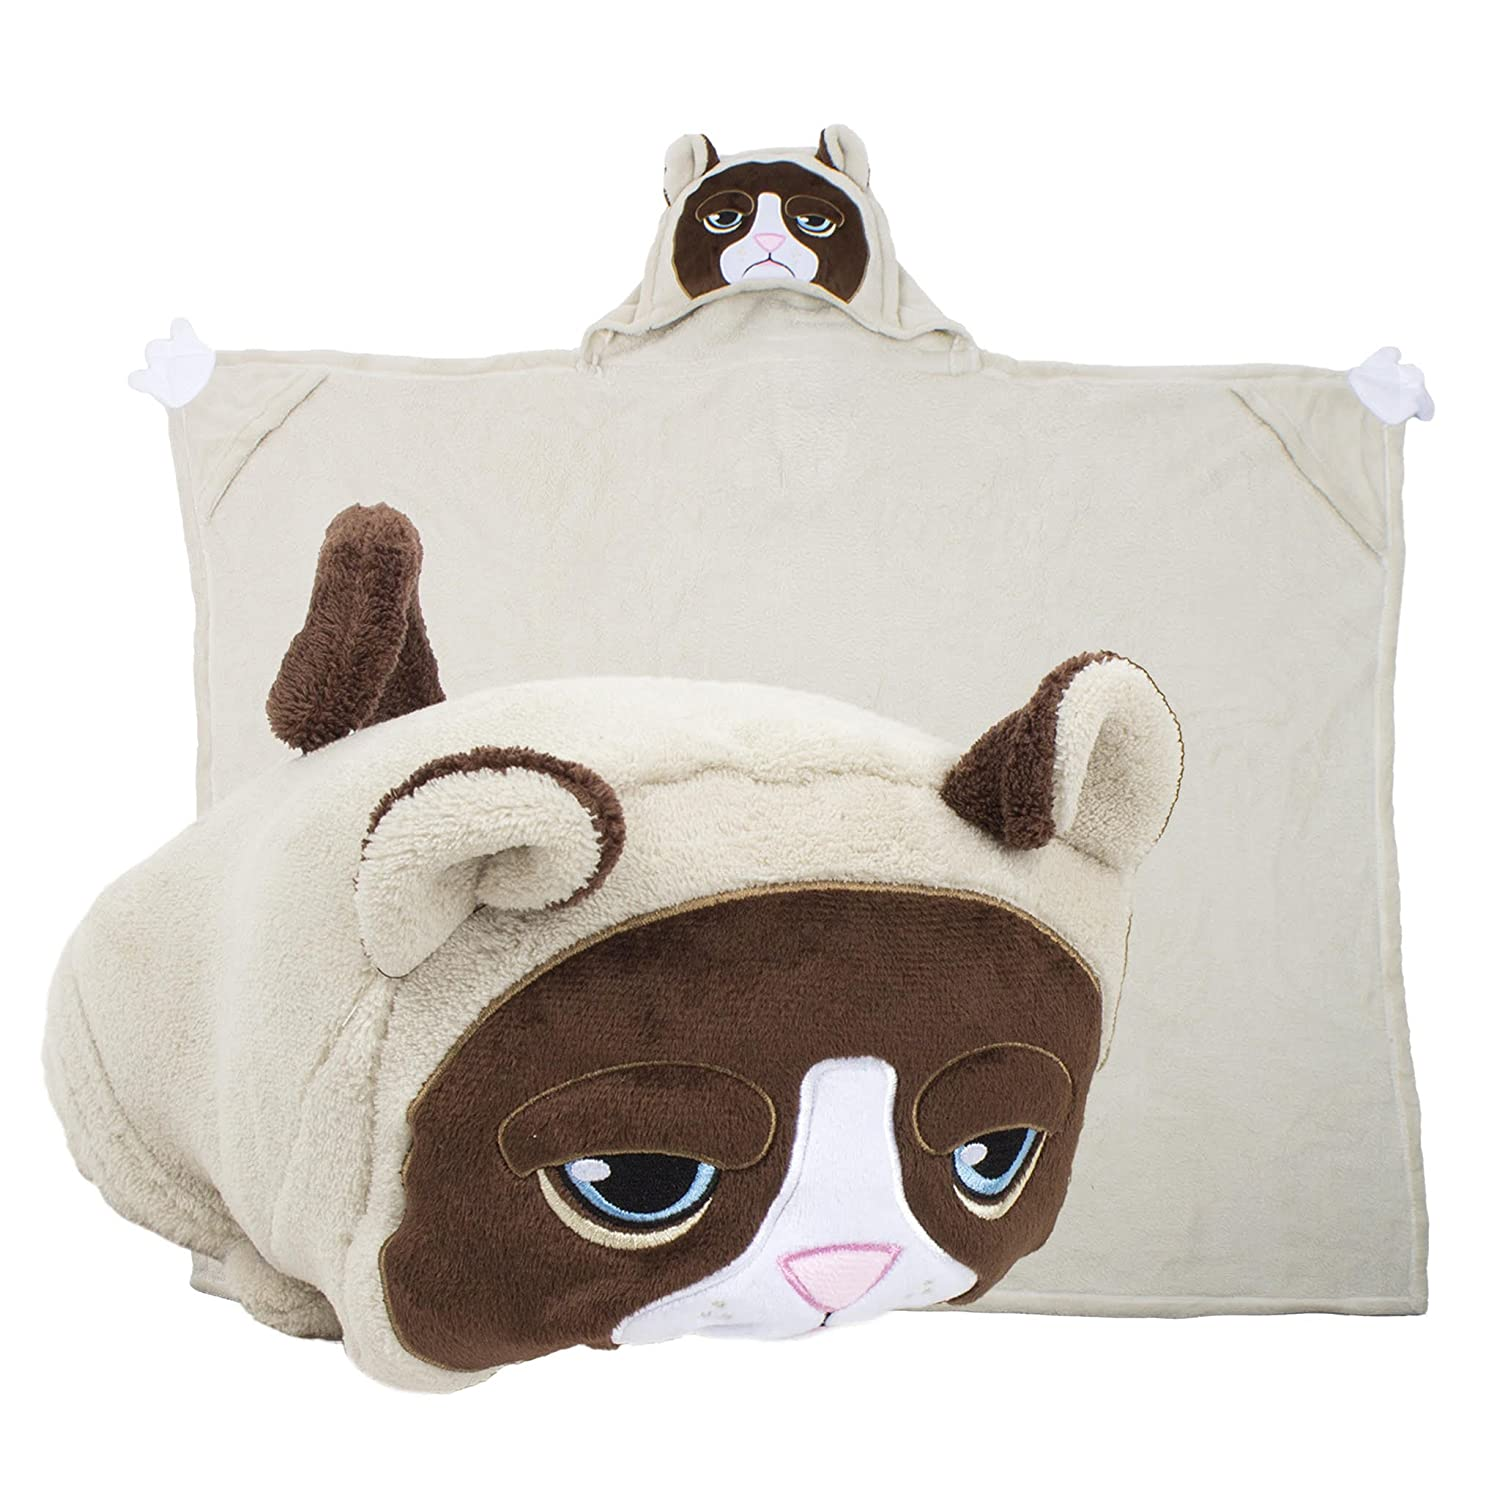 Animal Pillow Blanket : Grab One Of These Cutest Hooded Blankets For Kids